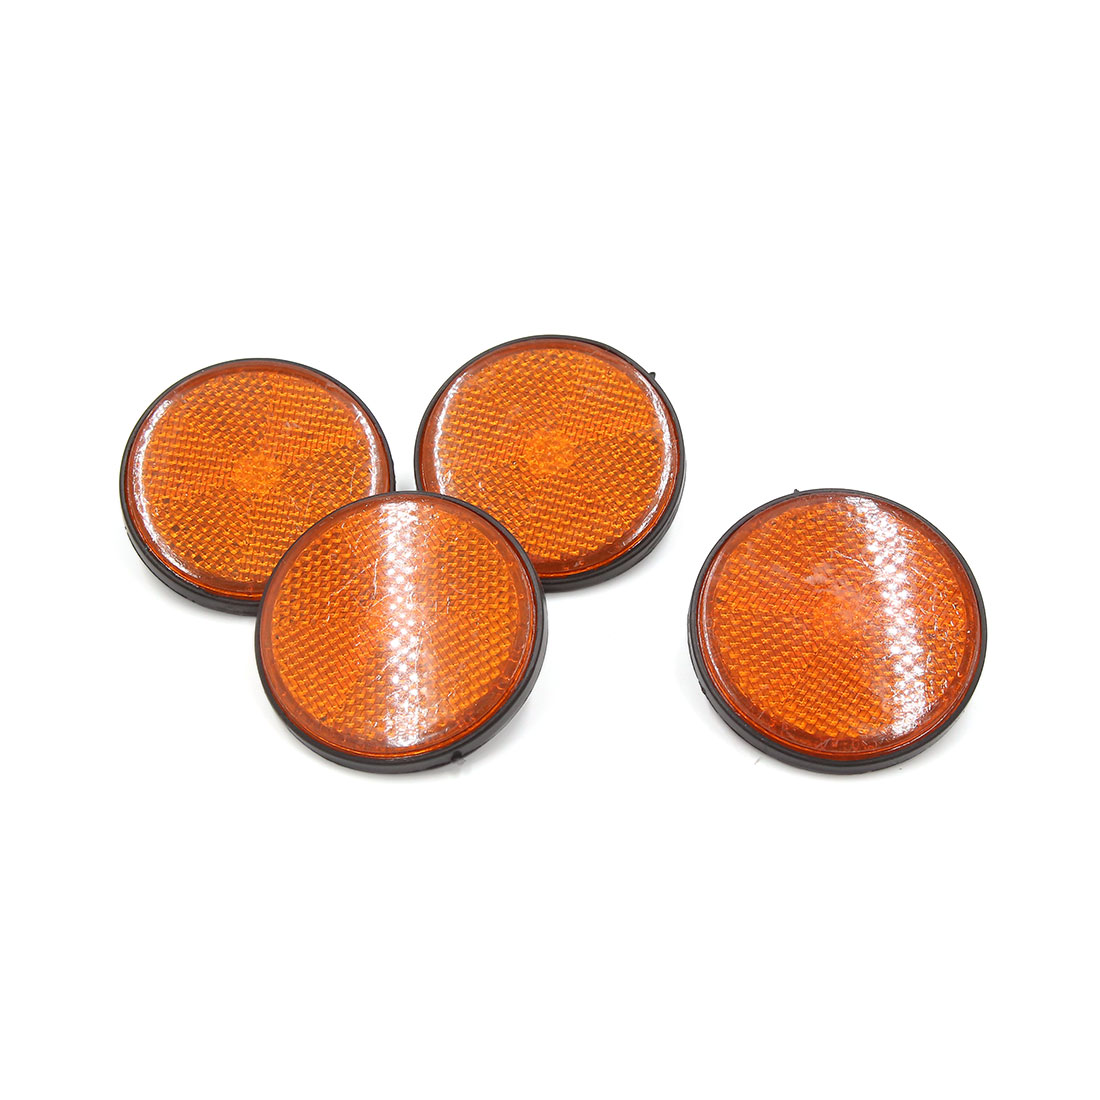 4 Pcs 56mm Dia Orange Black Plastic Round Reflective Reflector for Motorcycle